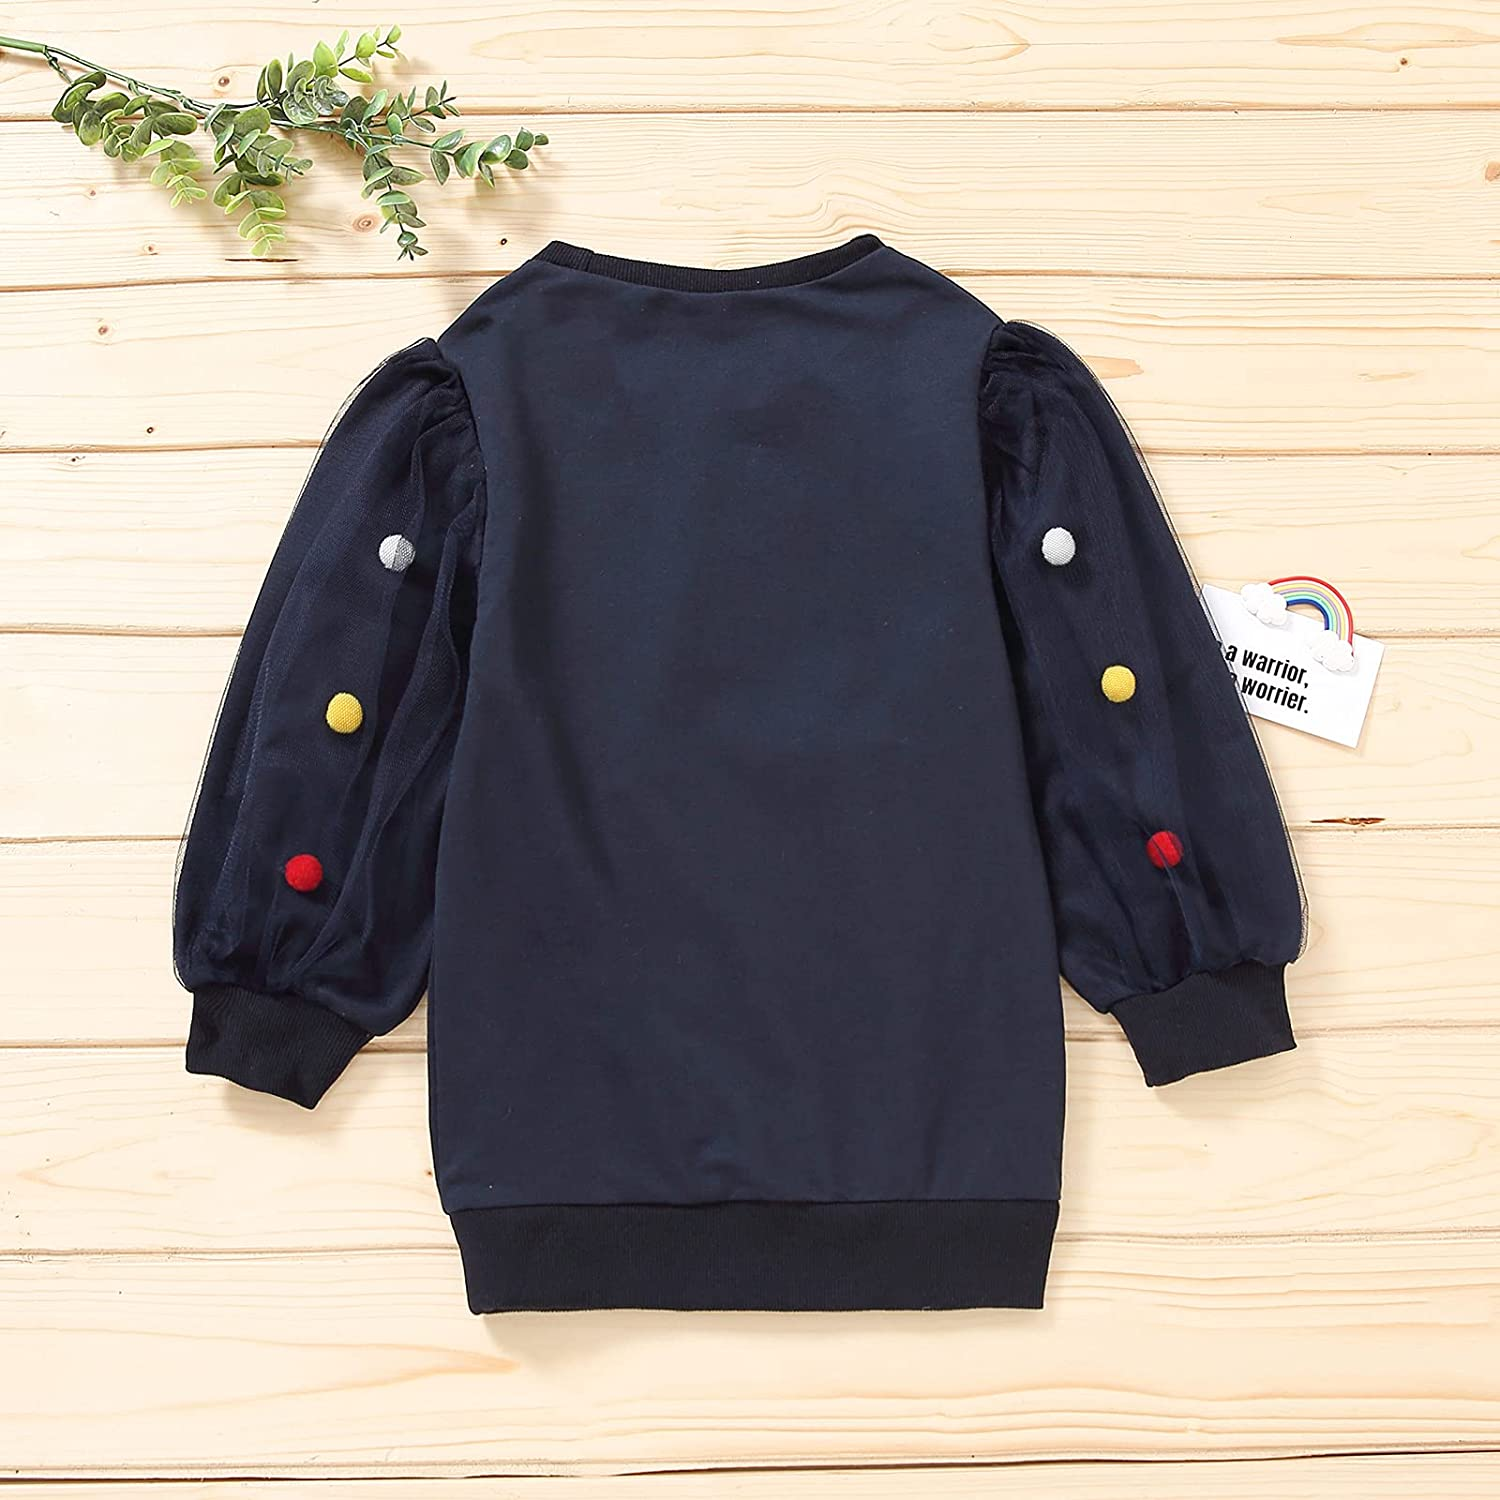 Toddler Girl Sweatshirt Dress Spring Fall Clothes Oversized Tops Outfit Kids Letter Printed Outwear Coat